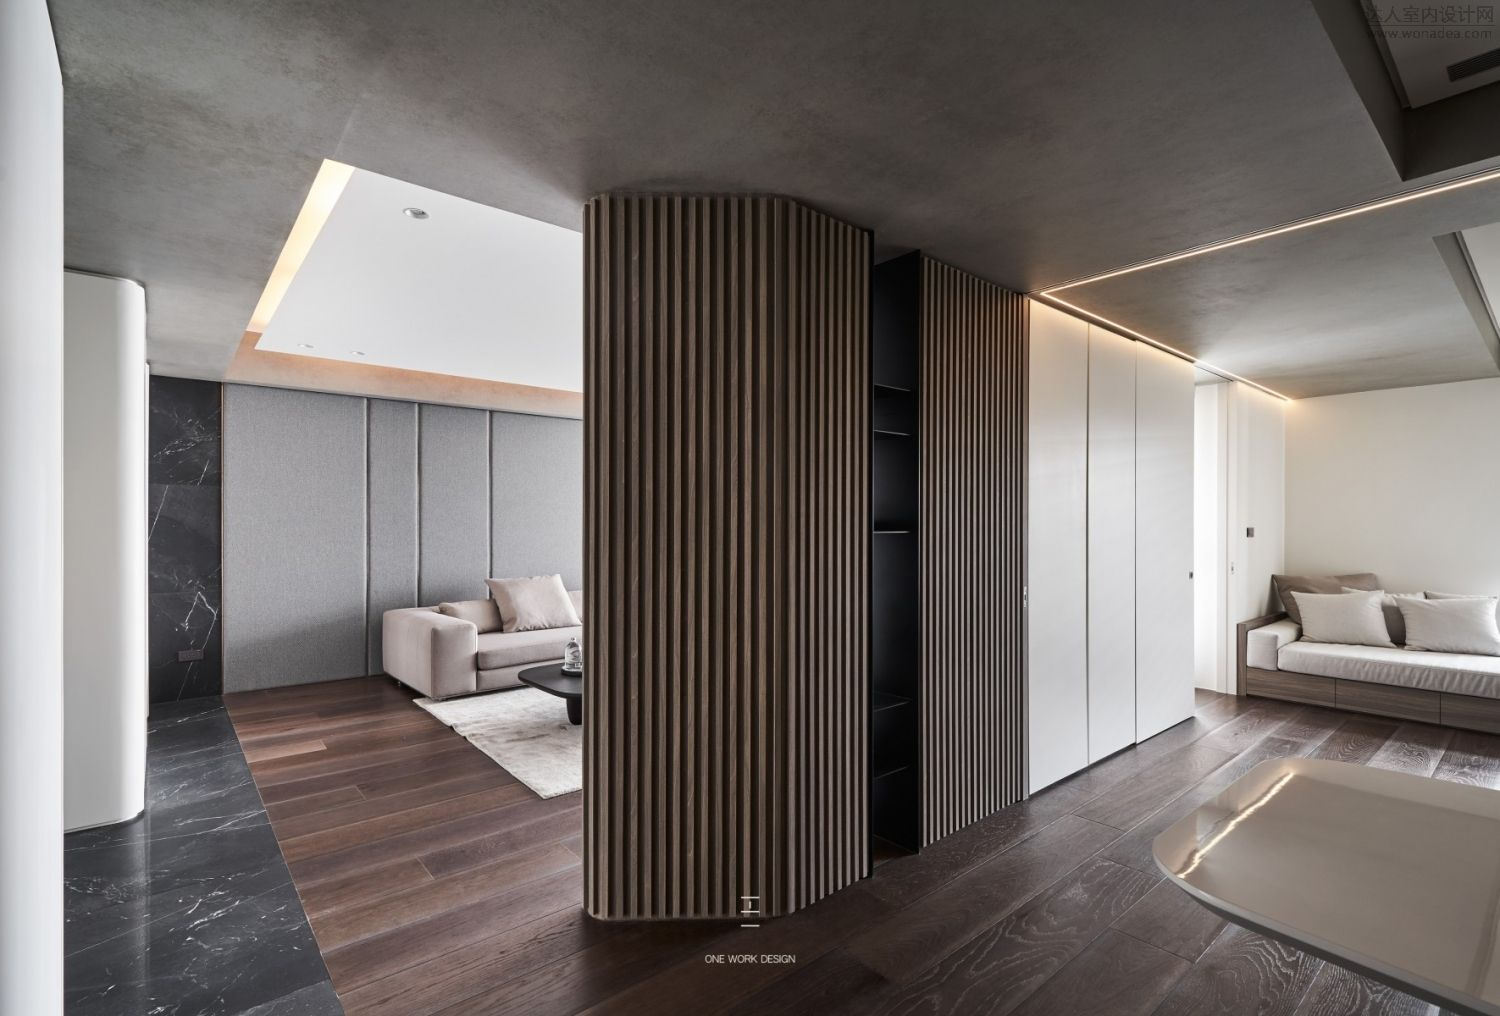 Pin by zheng on 1111 in 2018 pinterest interior apartment